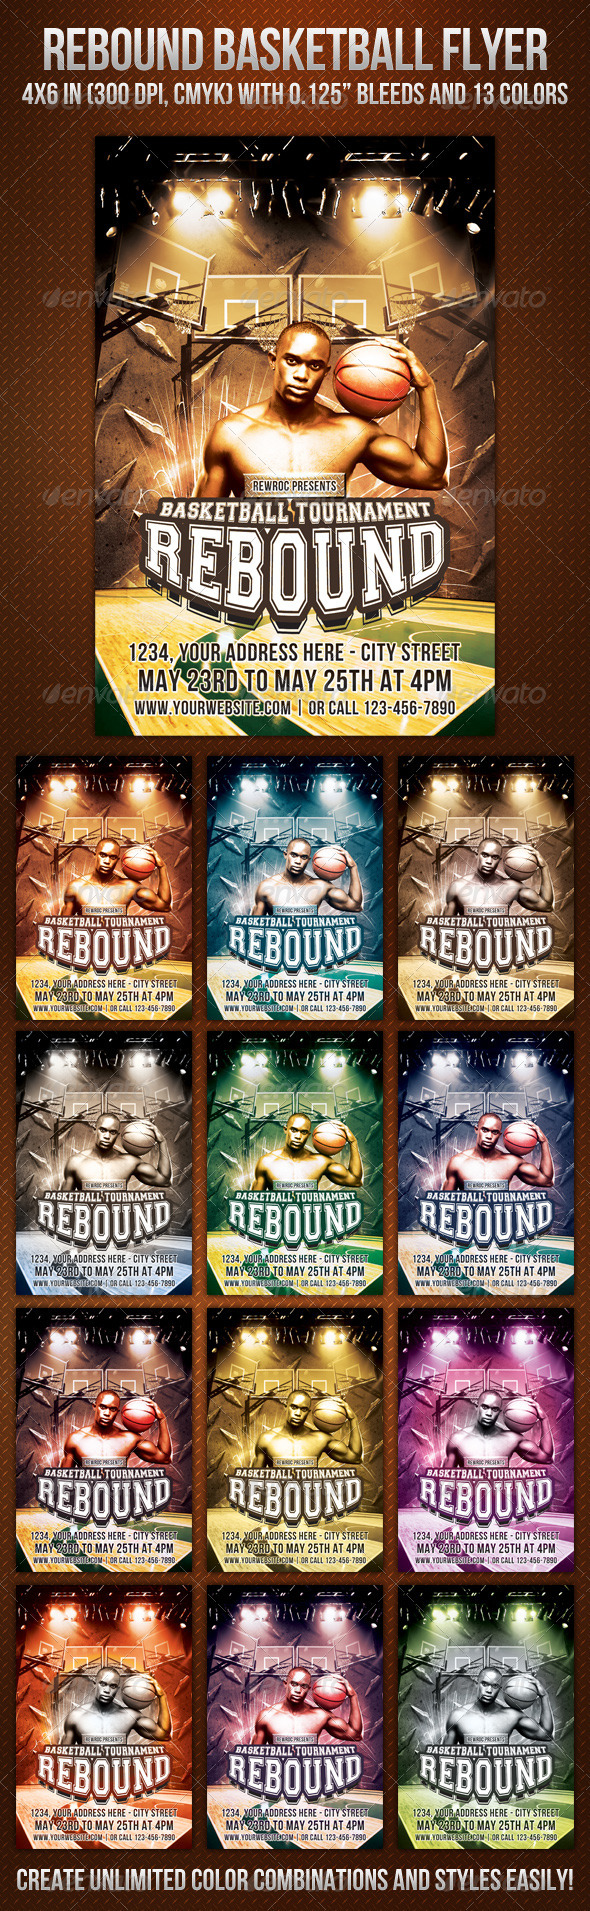 Graphic River Rebound Basketball Flyer Print Templates -  Flyers  Events  Sports 725122